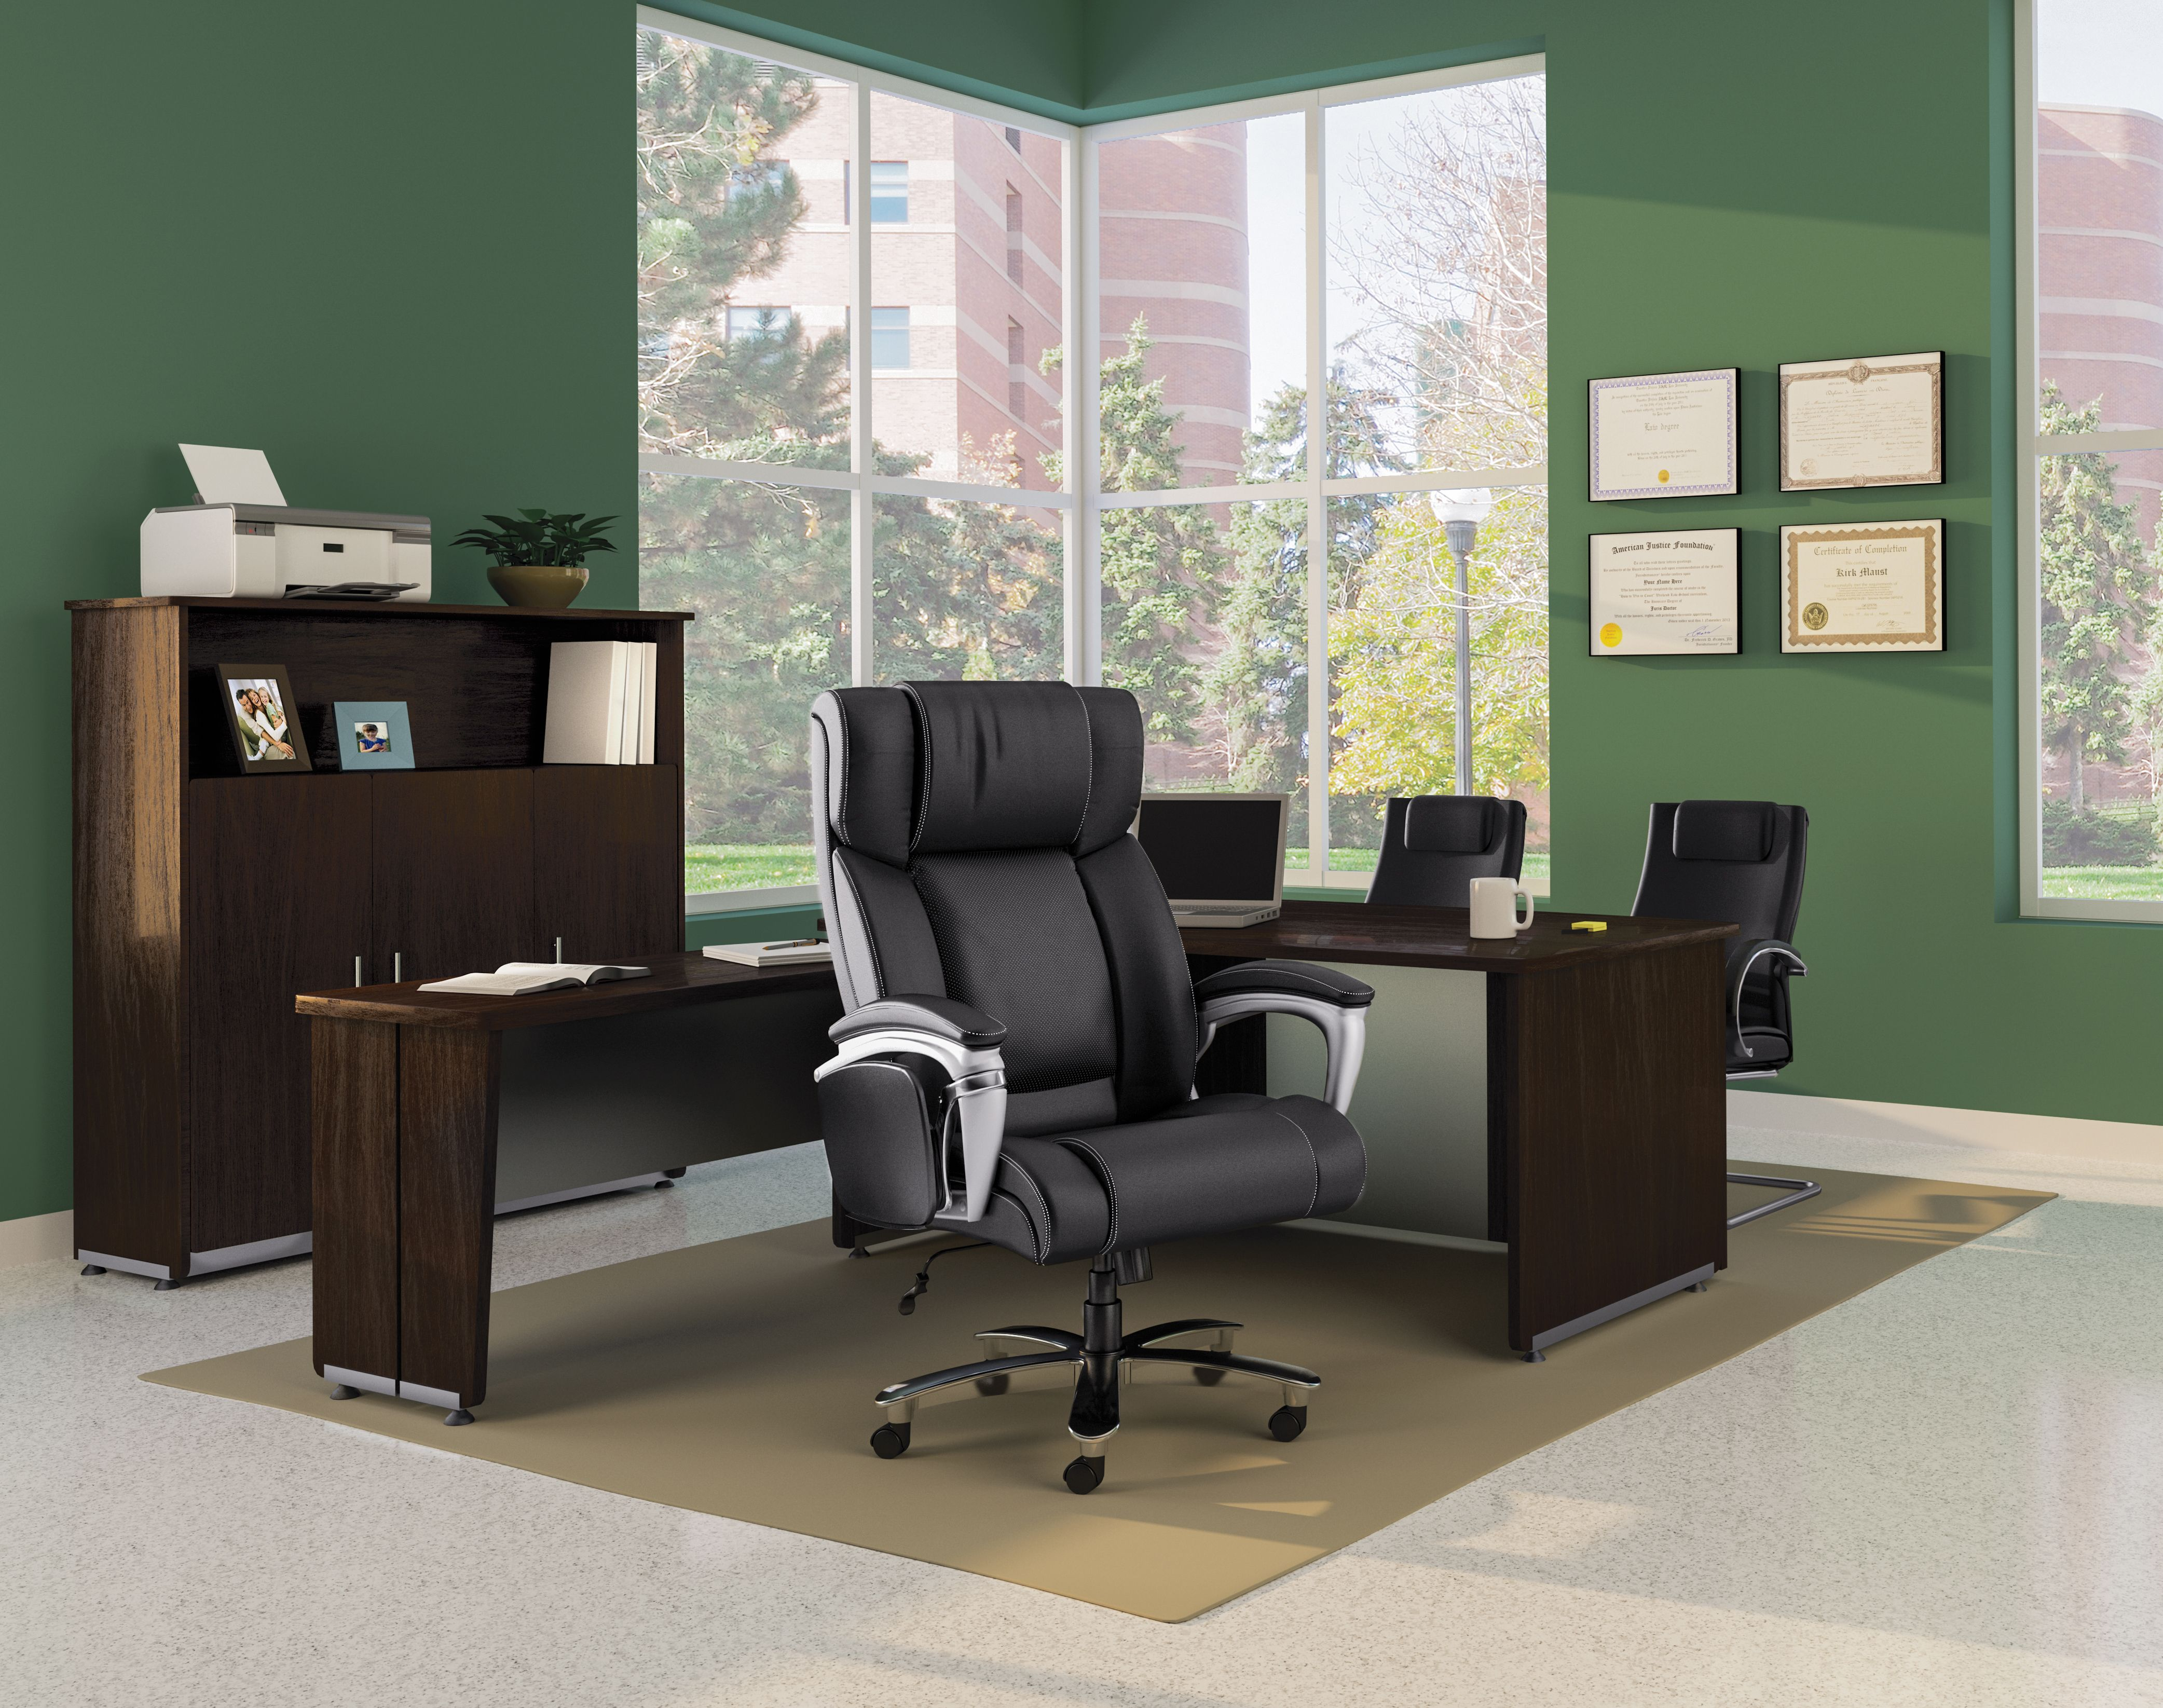 Go For A Classic Look.  Http://www.ofminc.com/anatomy Chair With Half Back And Gas Lift Ring For   Home Or Office Ofm Model 910 # Officedesign # Meu2026